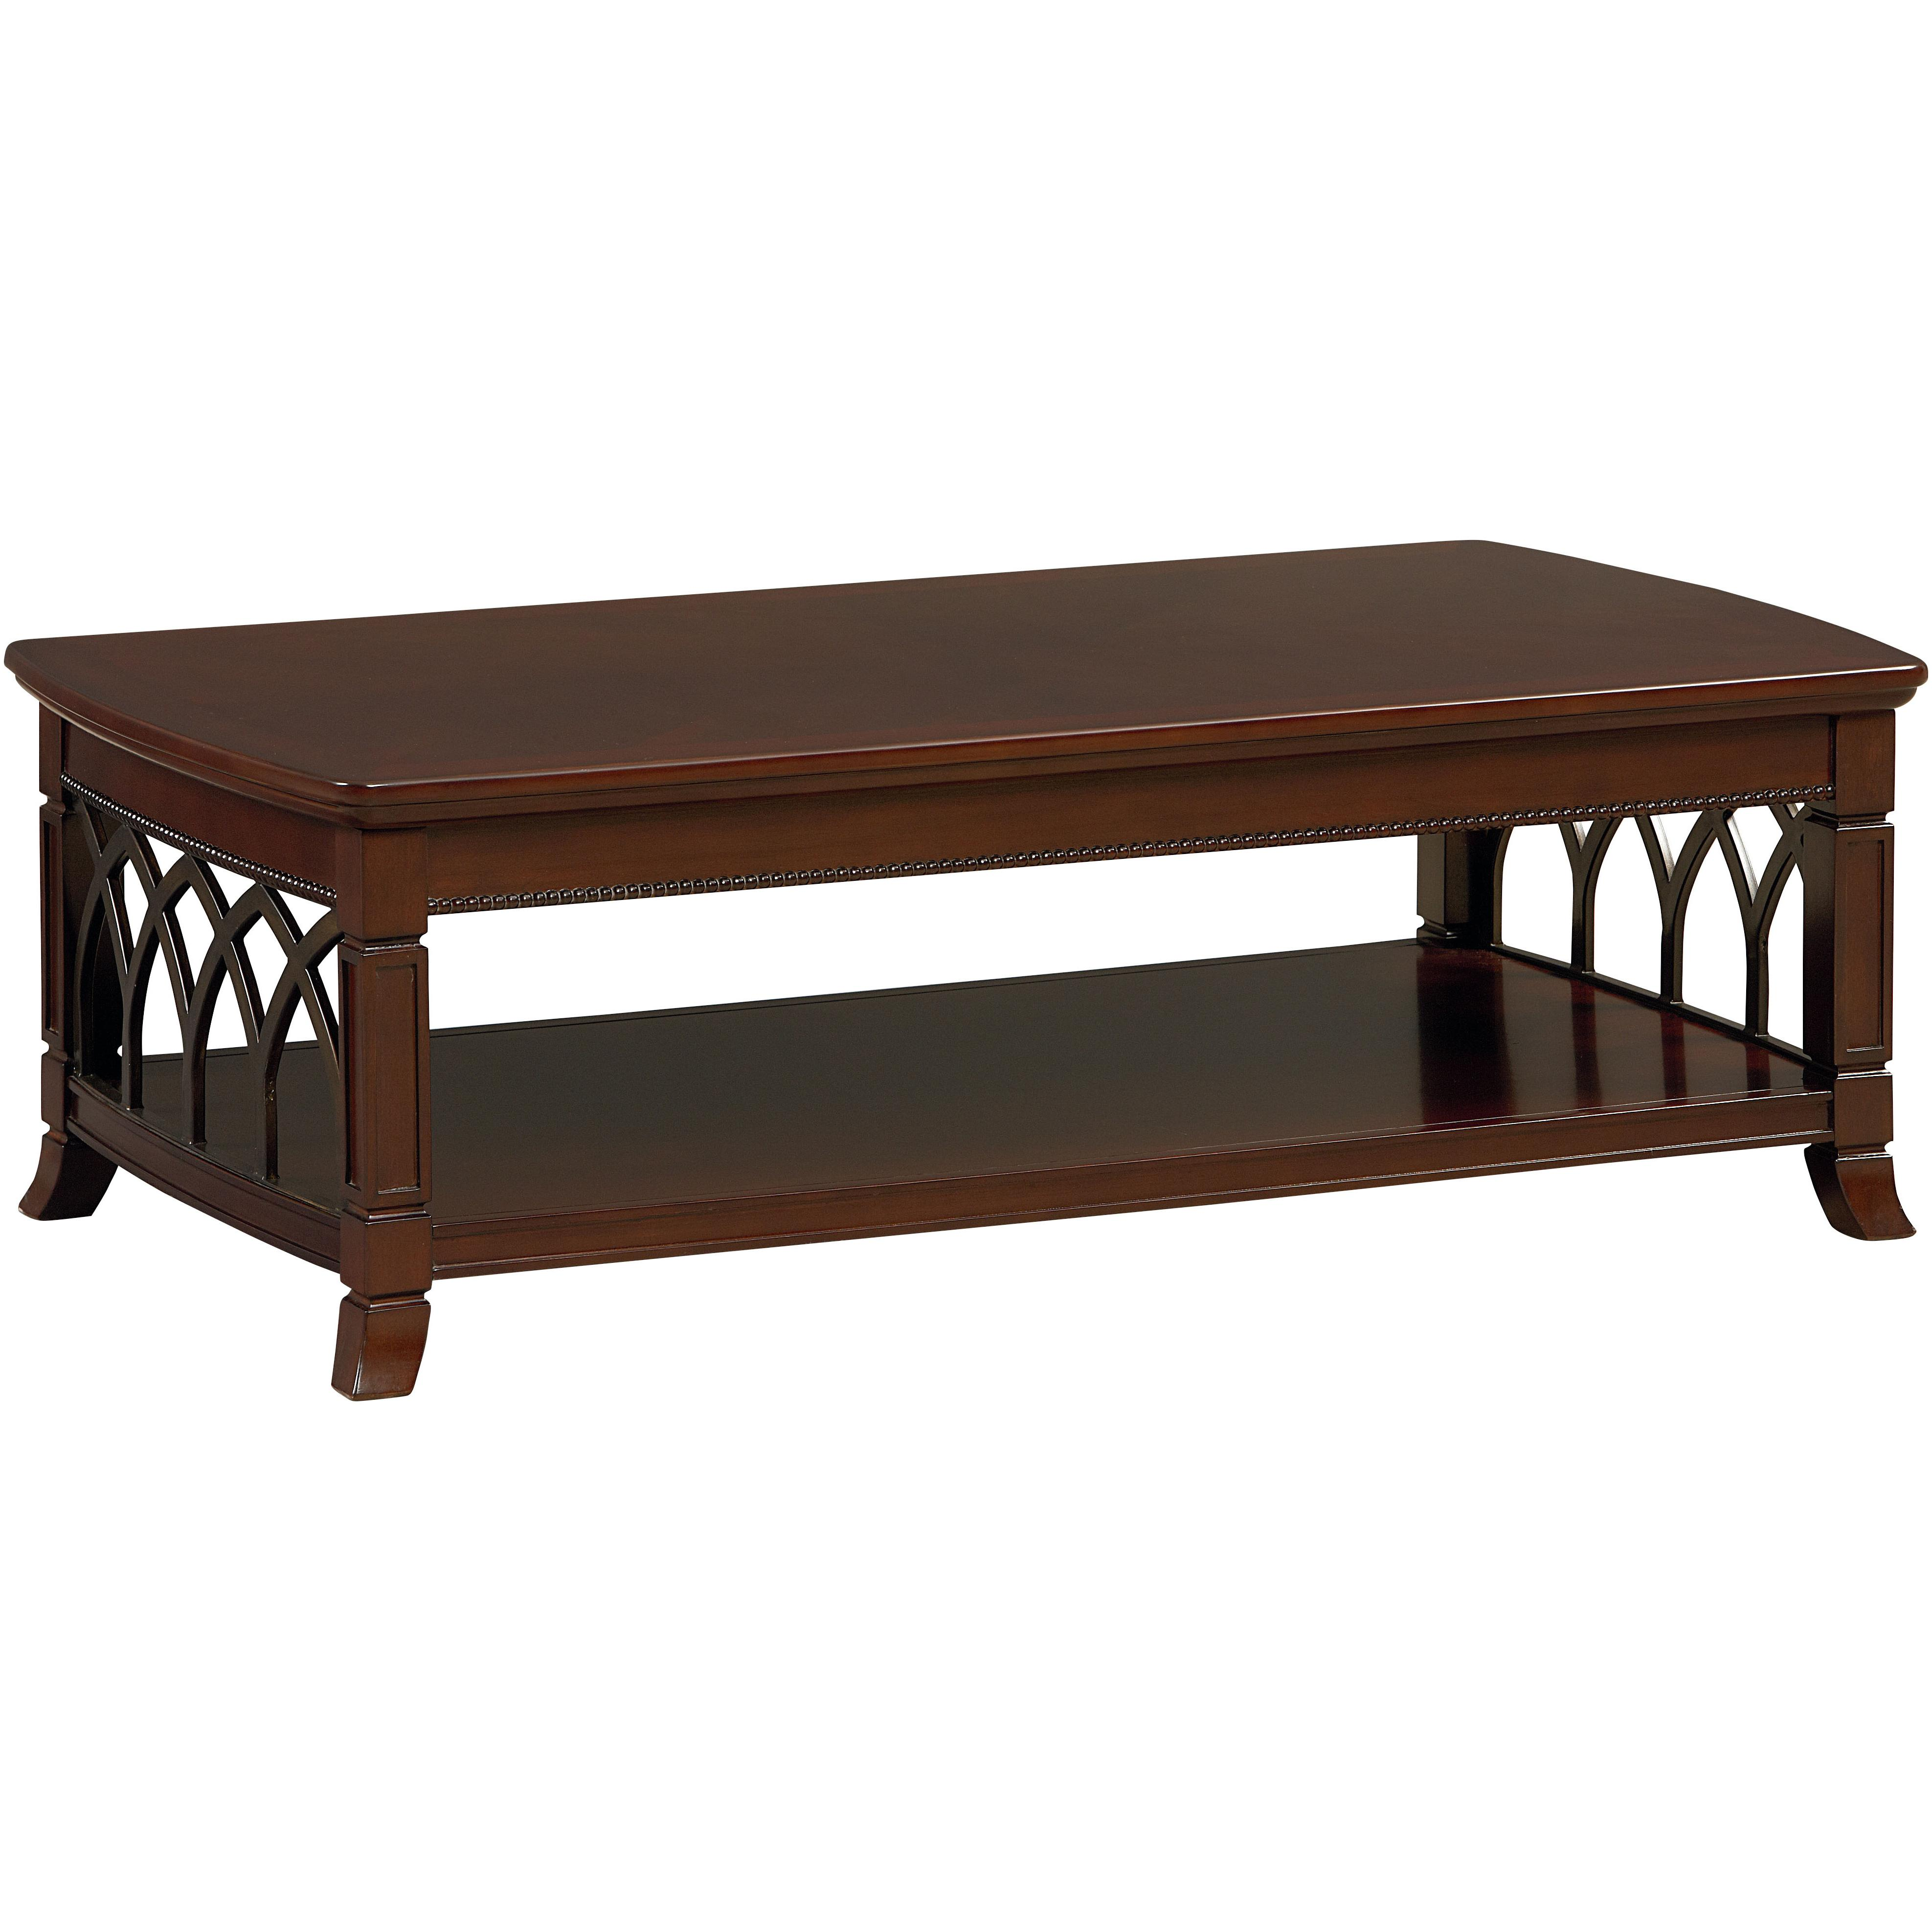 Standard Furniture Abbey Coffee Table with Shelf Knight